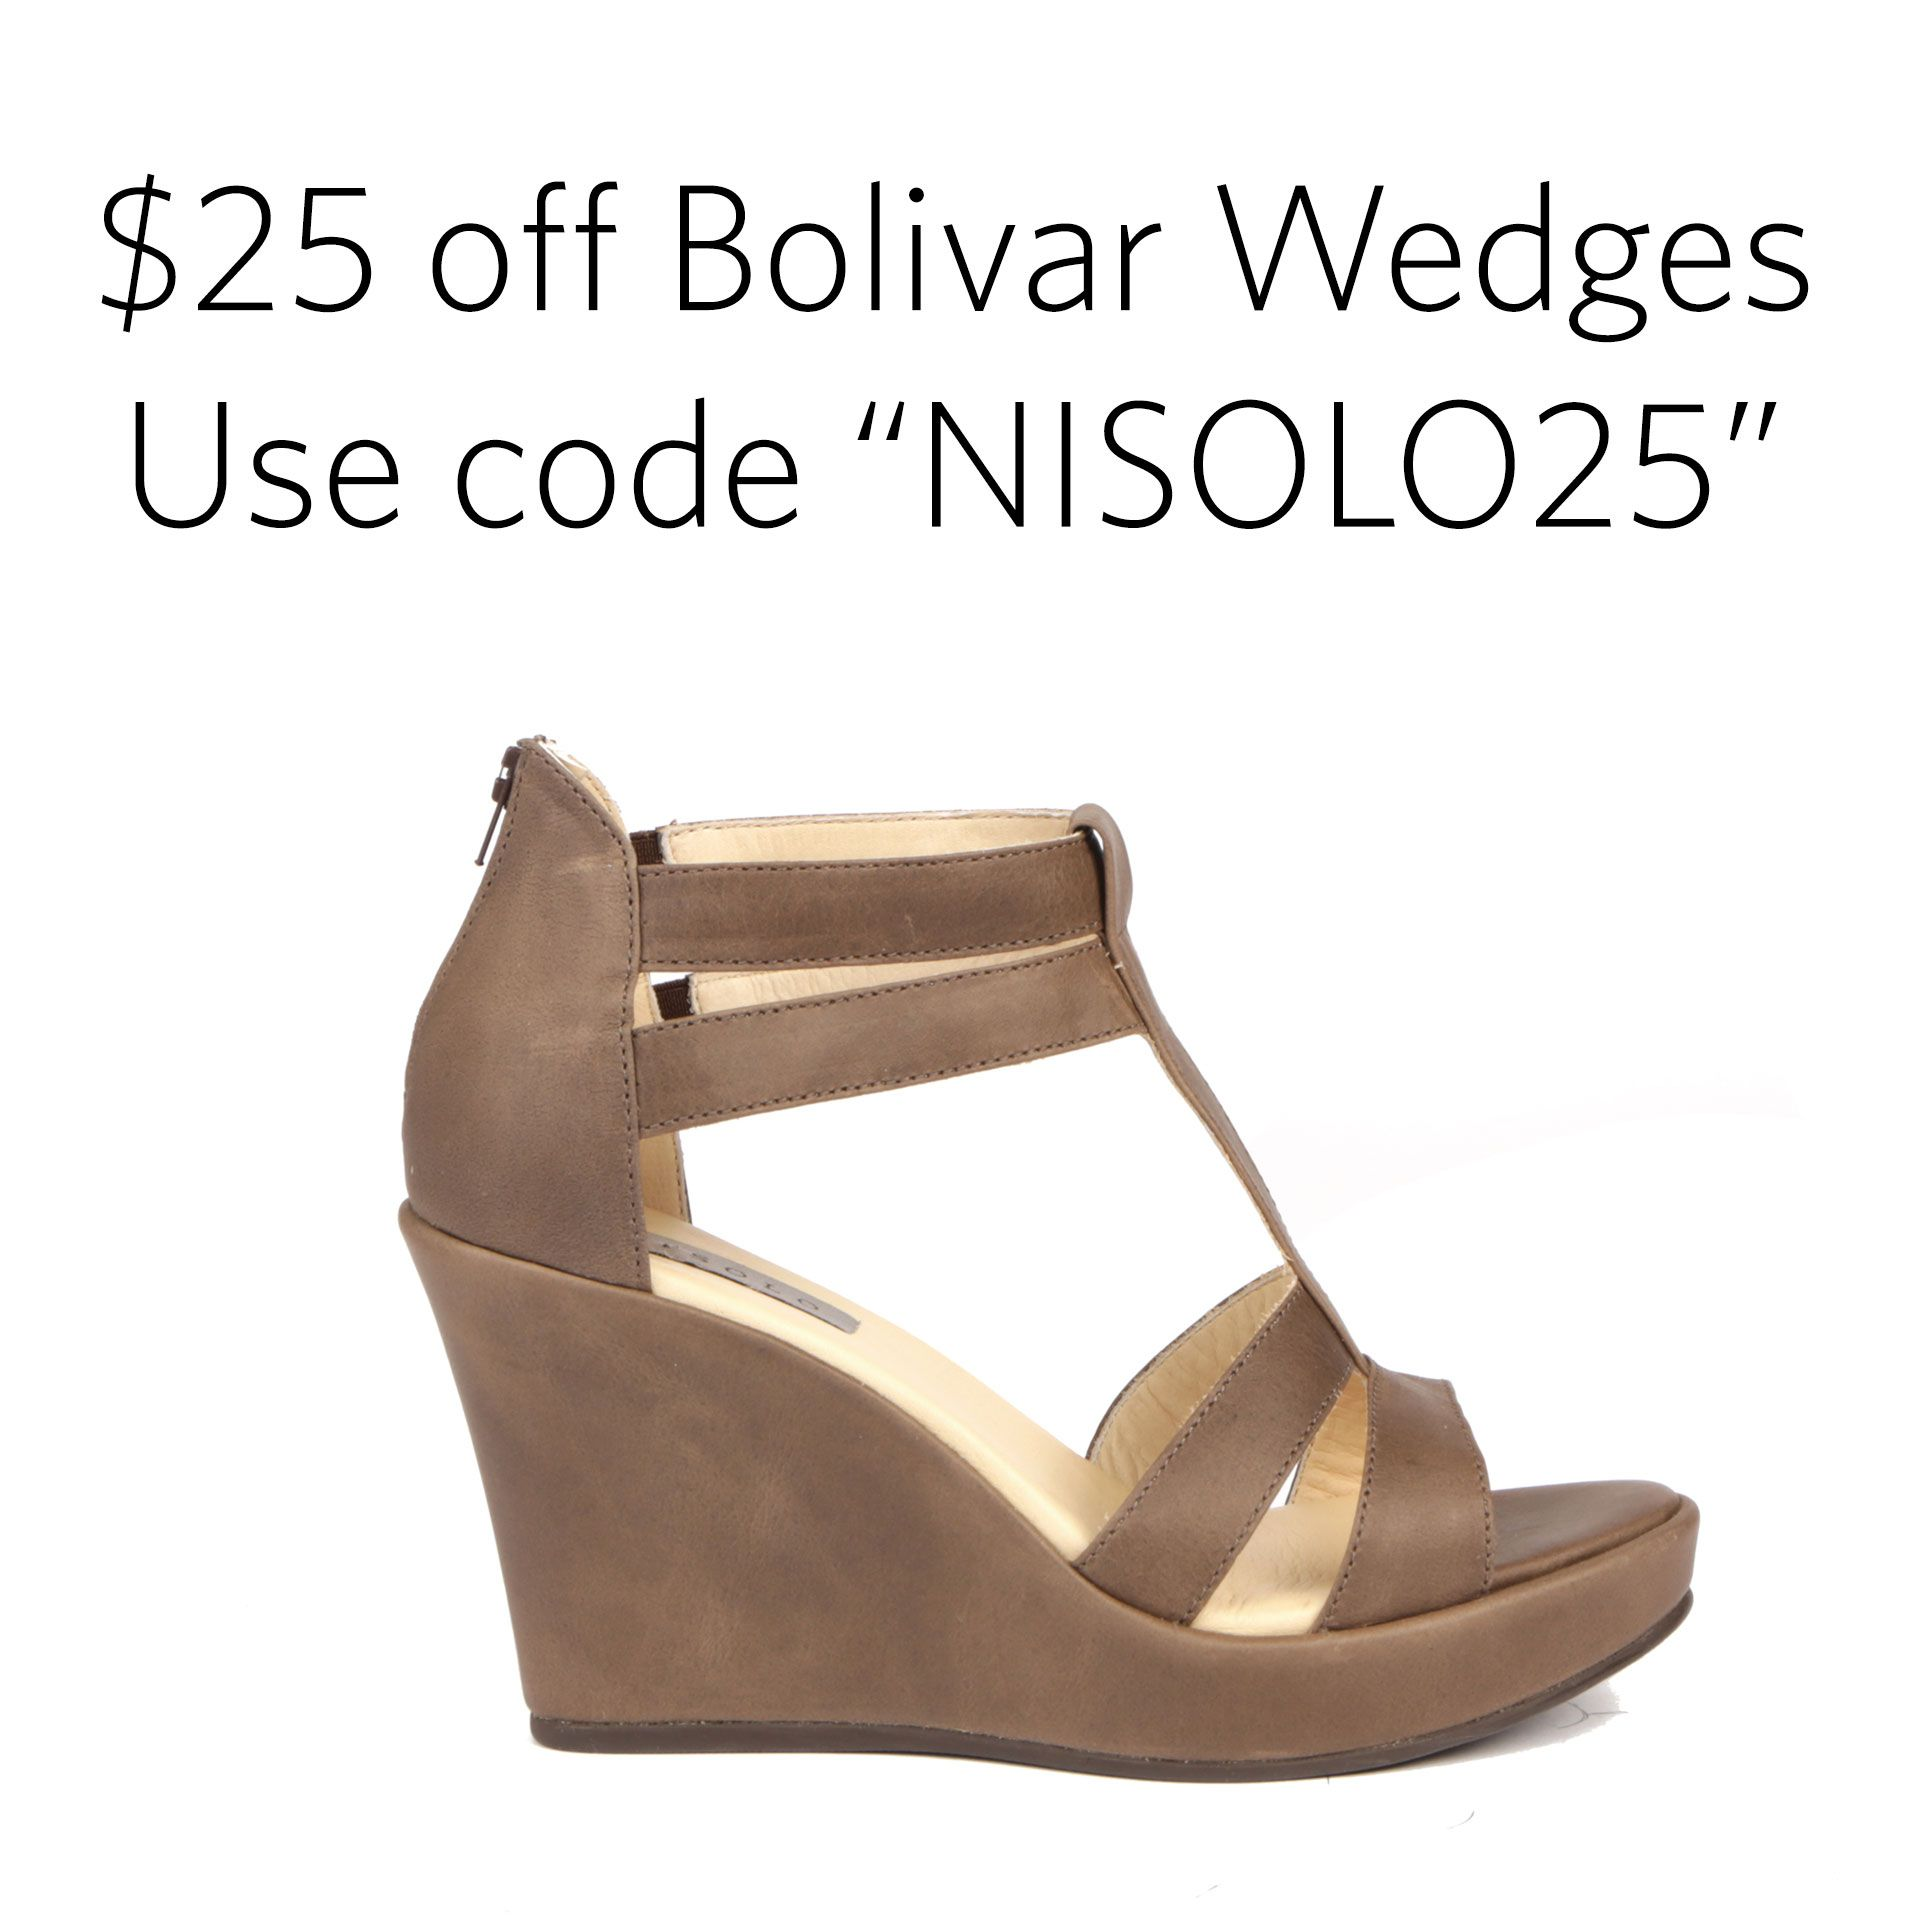 Wedges, Leather wedges